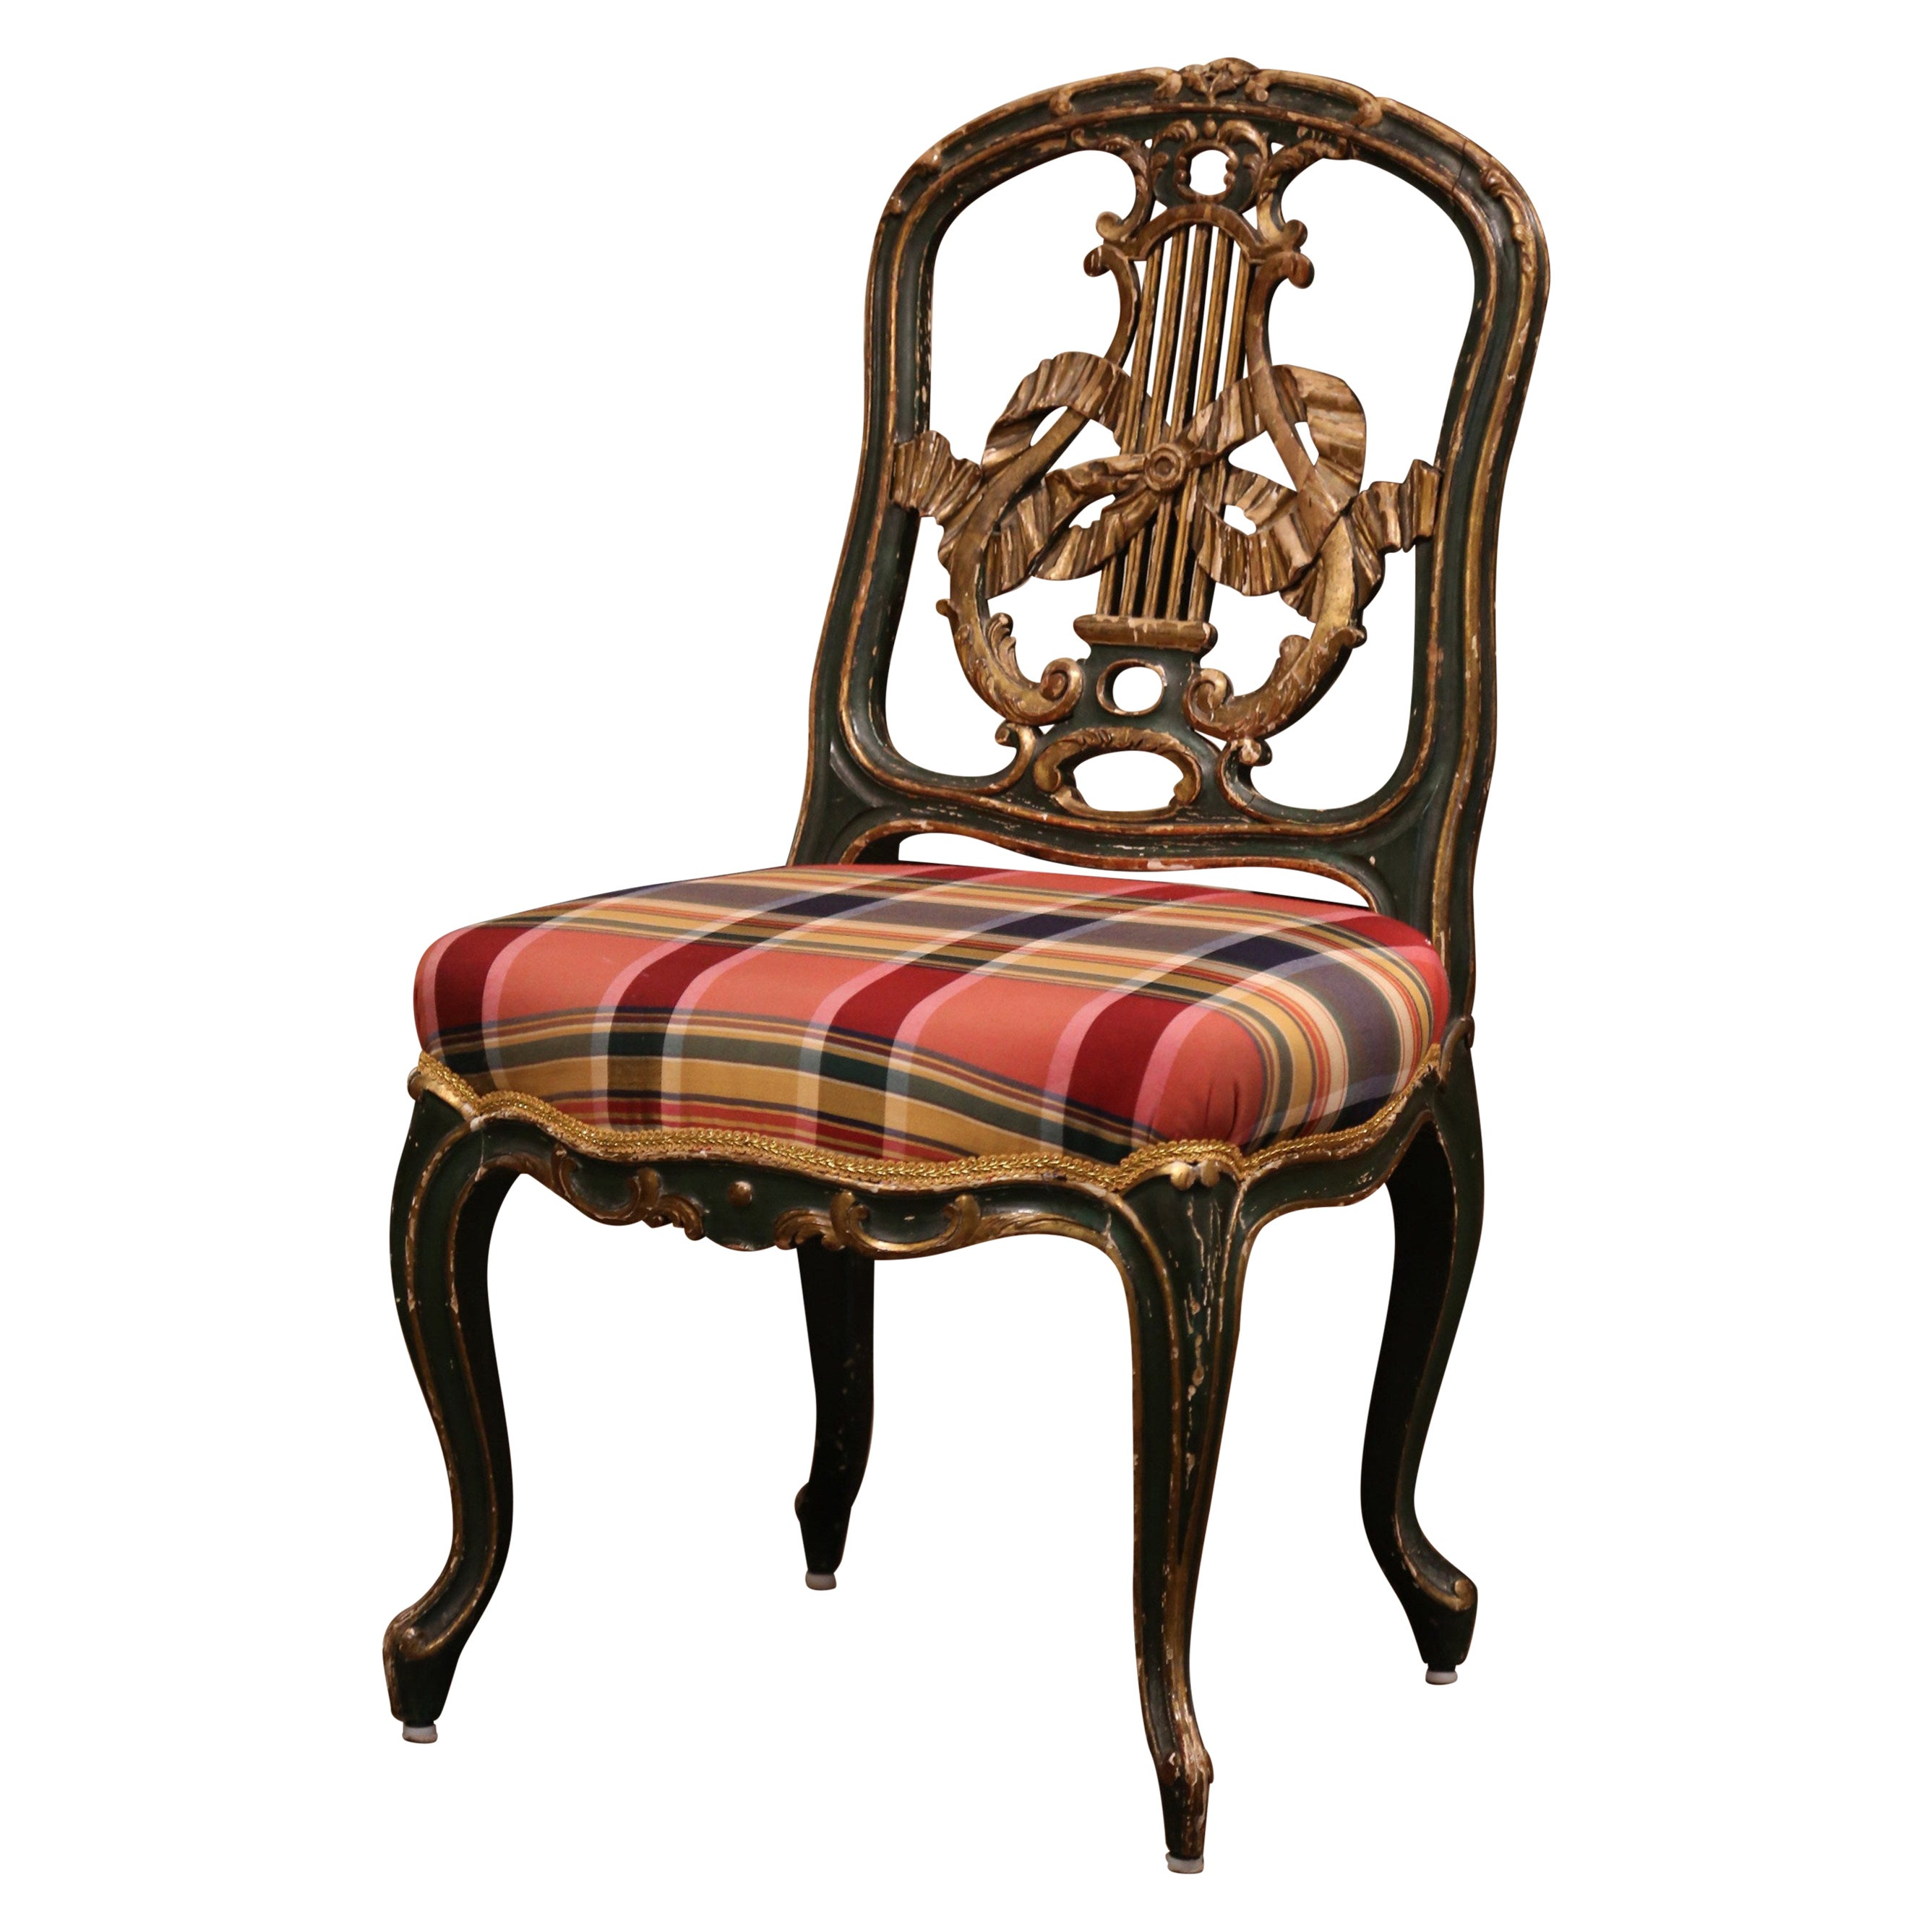 19th Century French Louis XV Carved Painted and Gilt Occasional or Vanity Chair